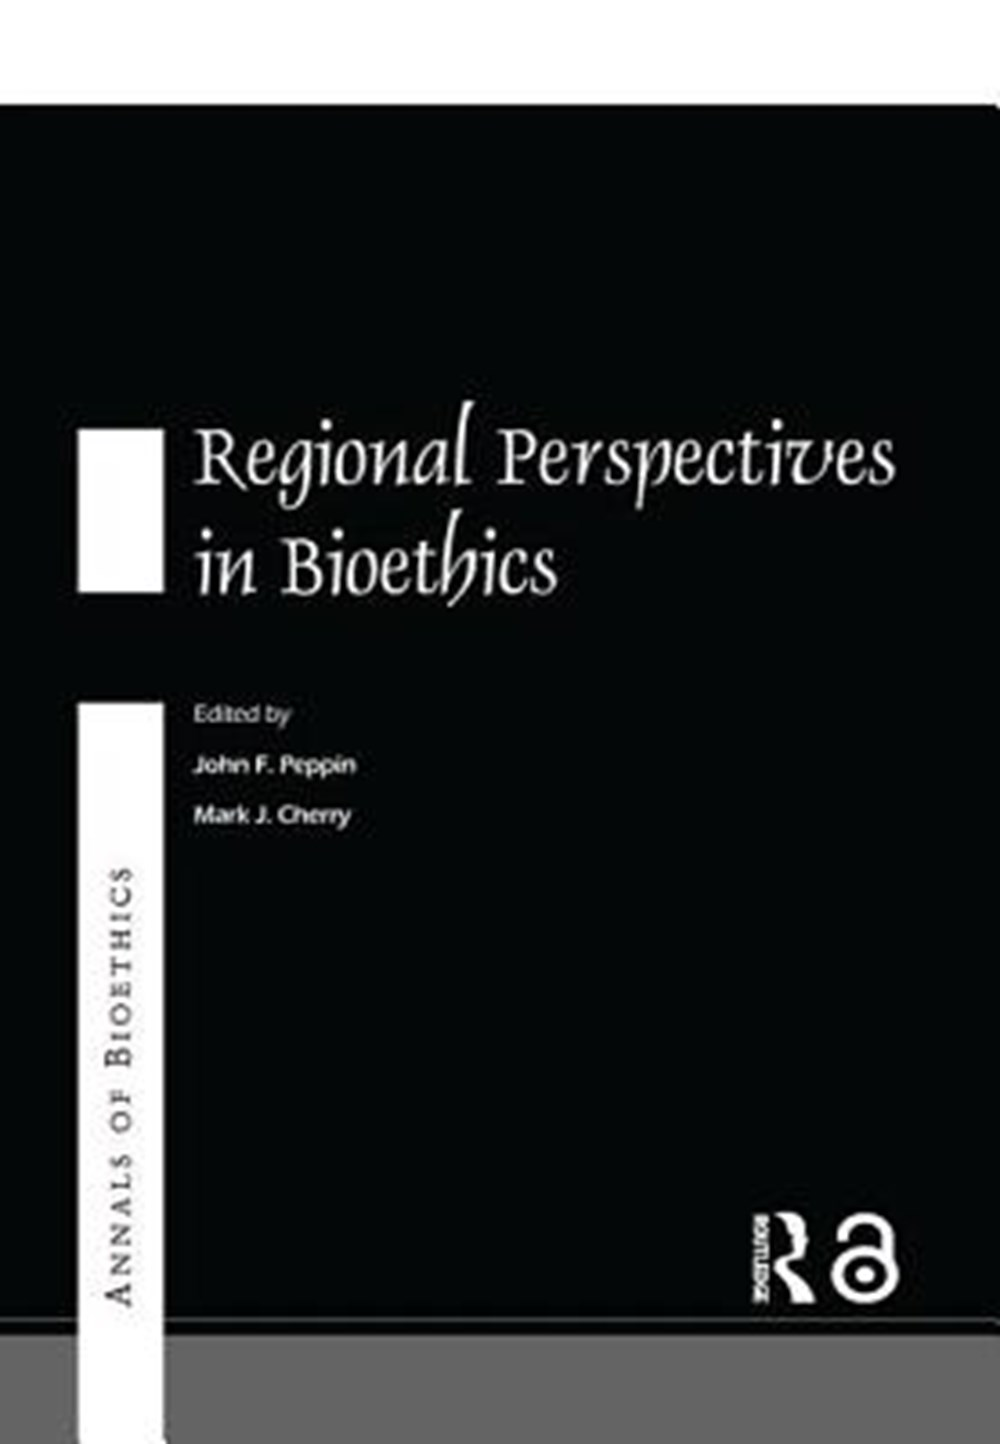 Annals of Bioethics Regional Perspectives in Bioethics